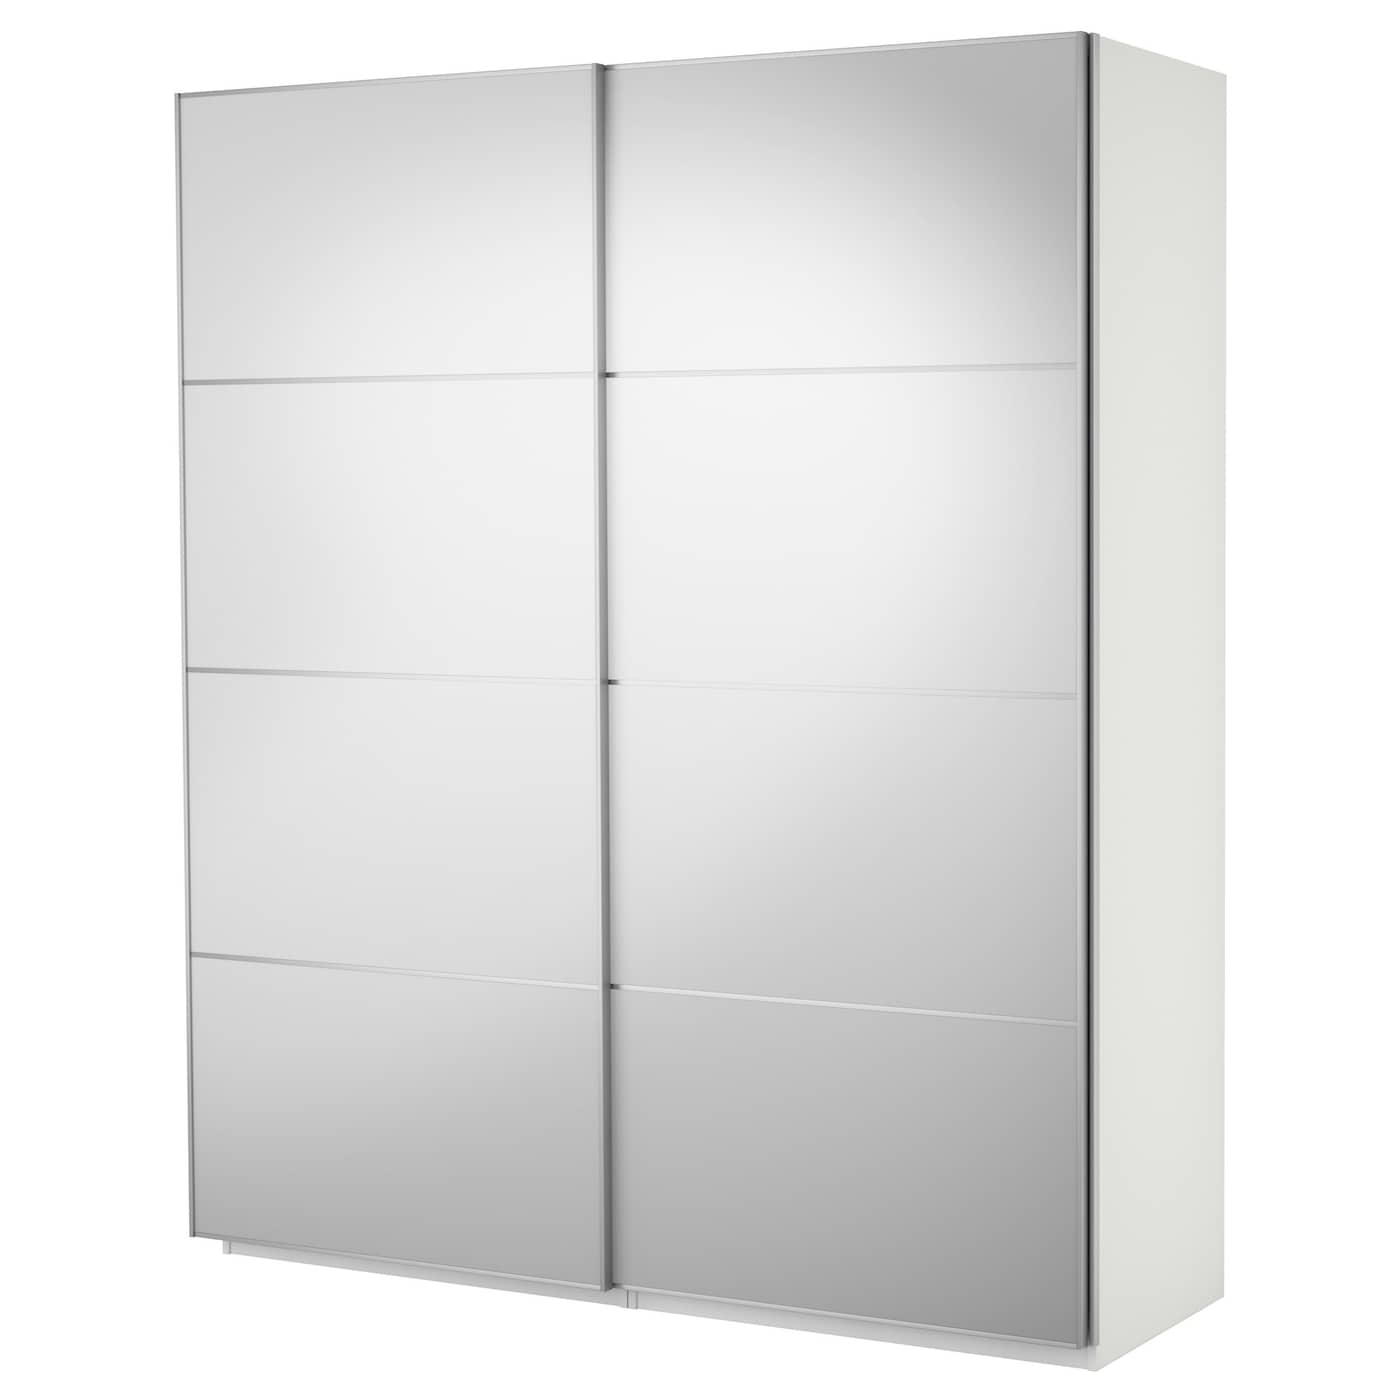 Pax wardrobe with sliding doors white auli mirror glass 200 x 44 x 236 cm ikea - Ikea armoire with mirror ...